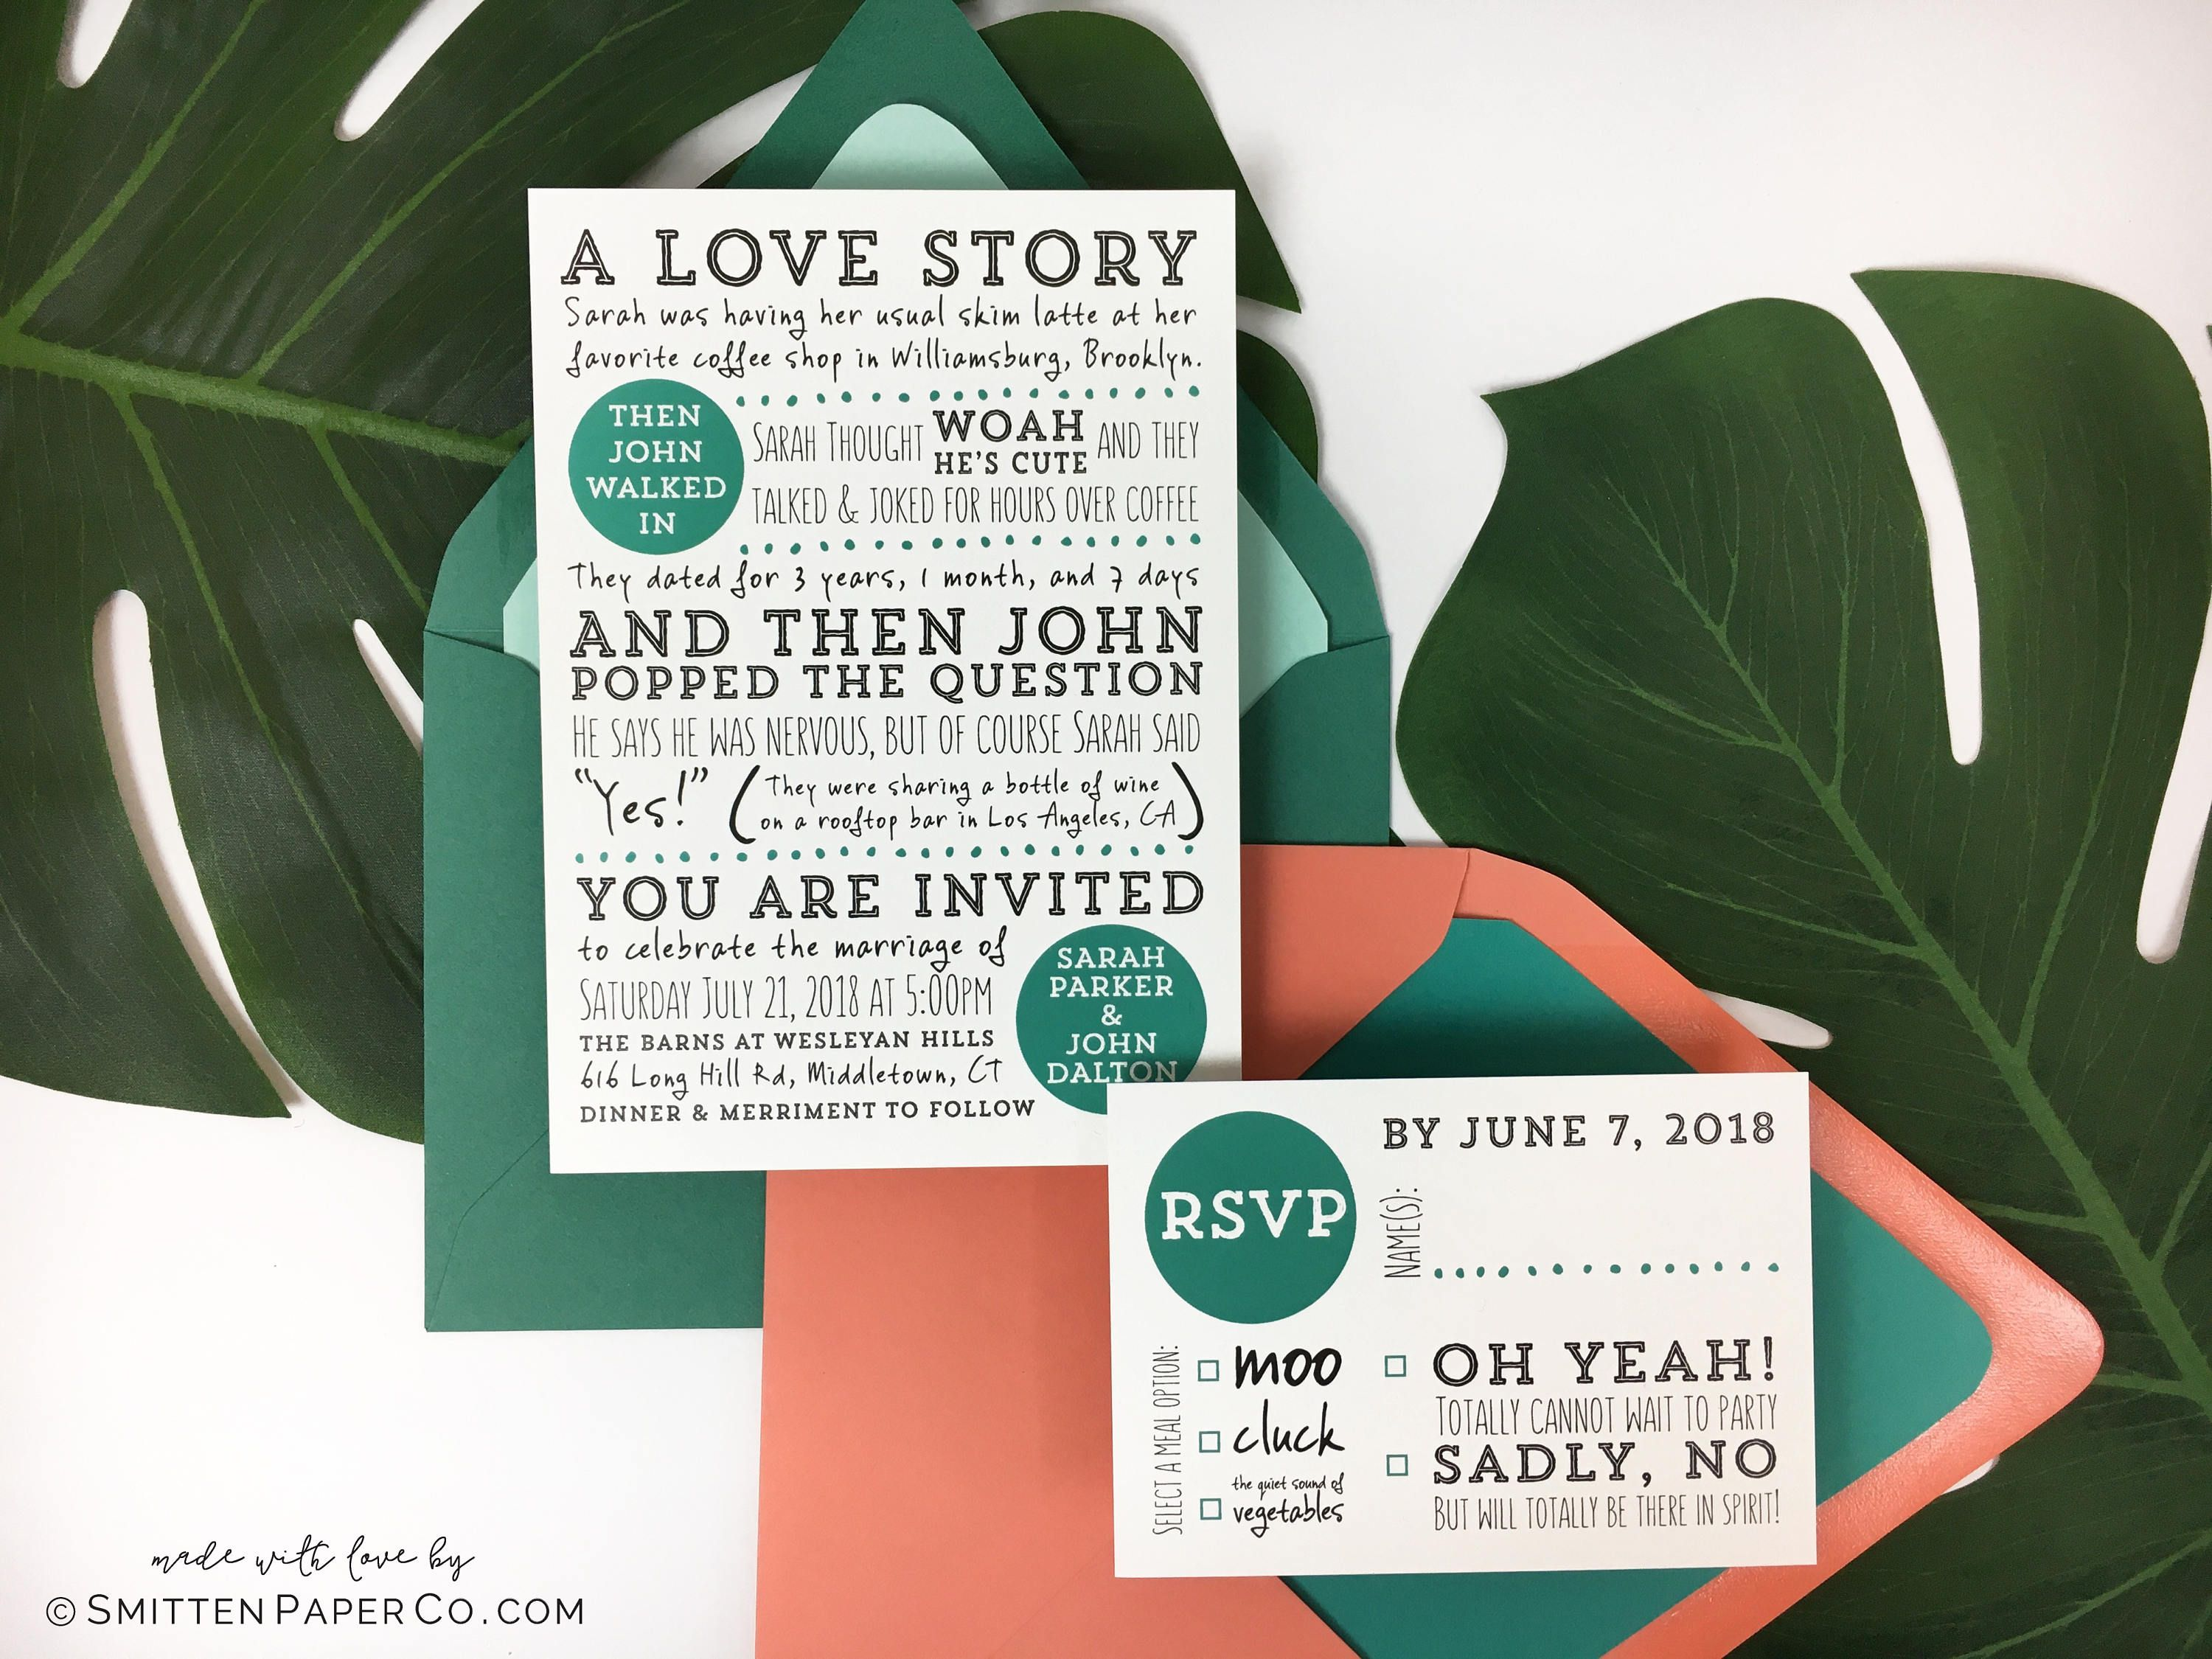 wedding invitation rsvp wording funny%0A Find this Pin and more on Creative Wedding Inspiration by perfectpalette